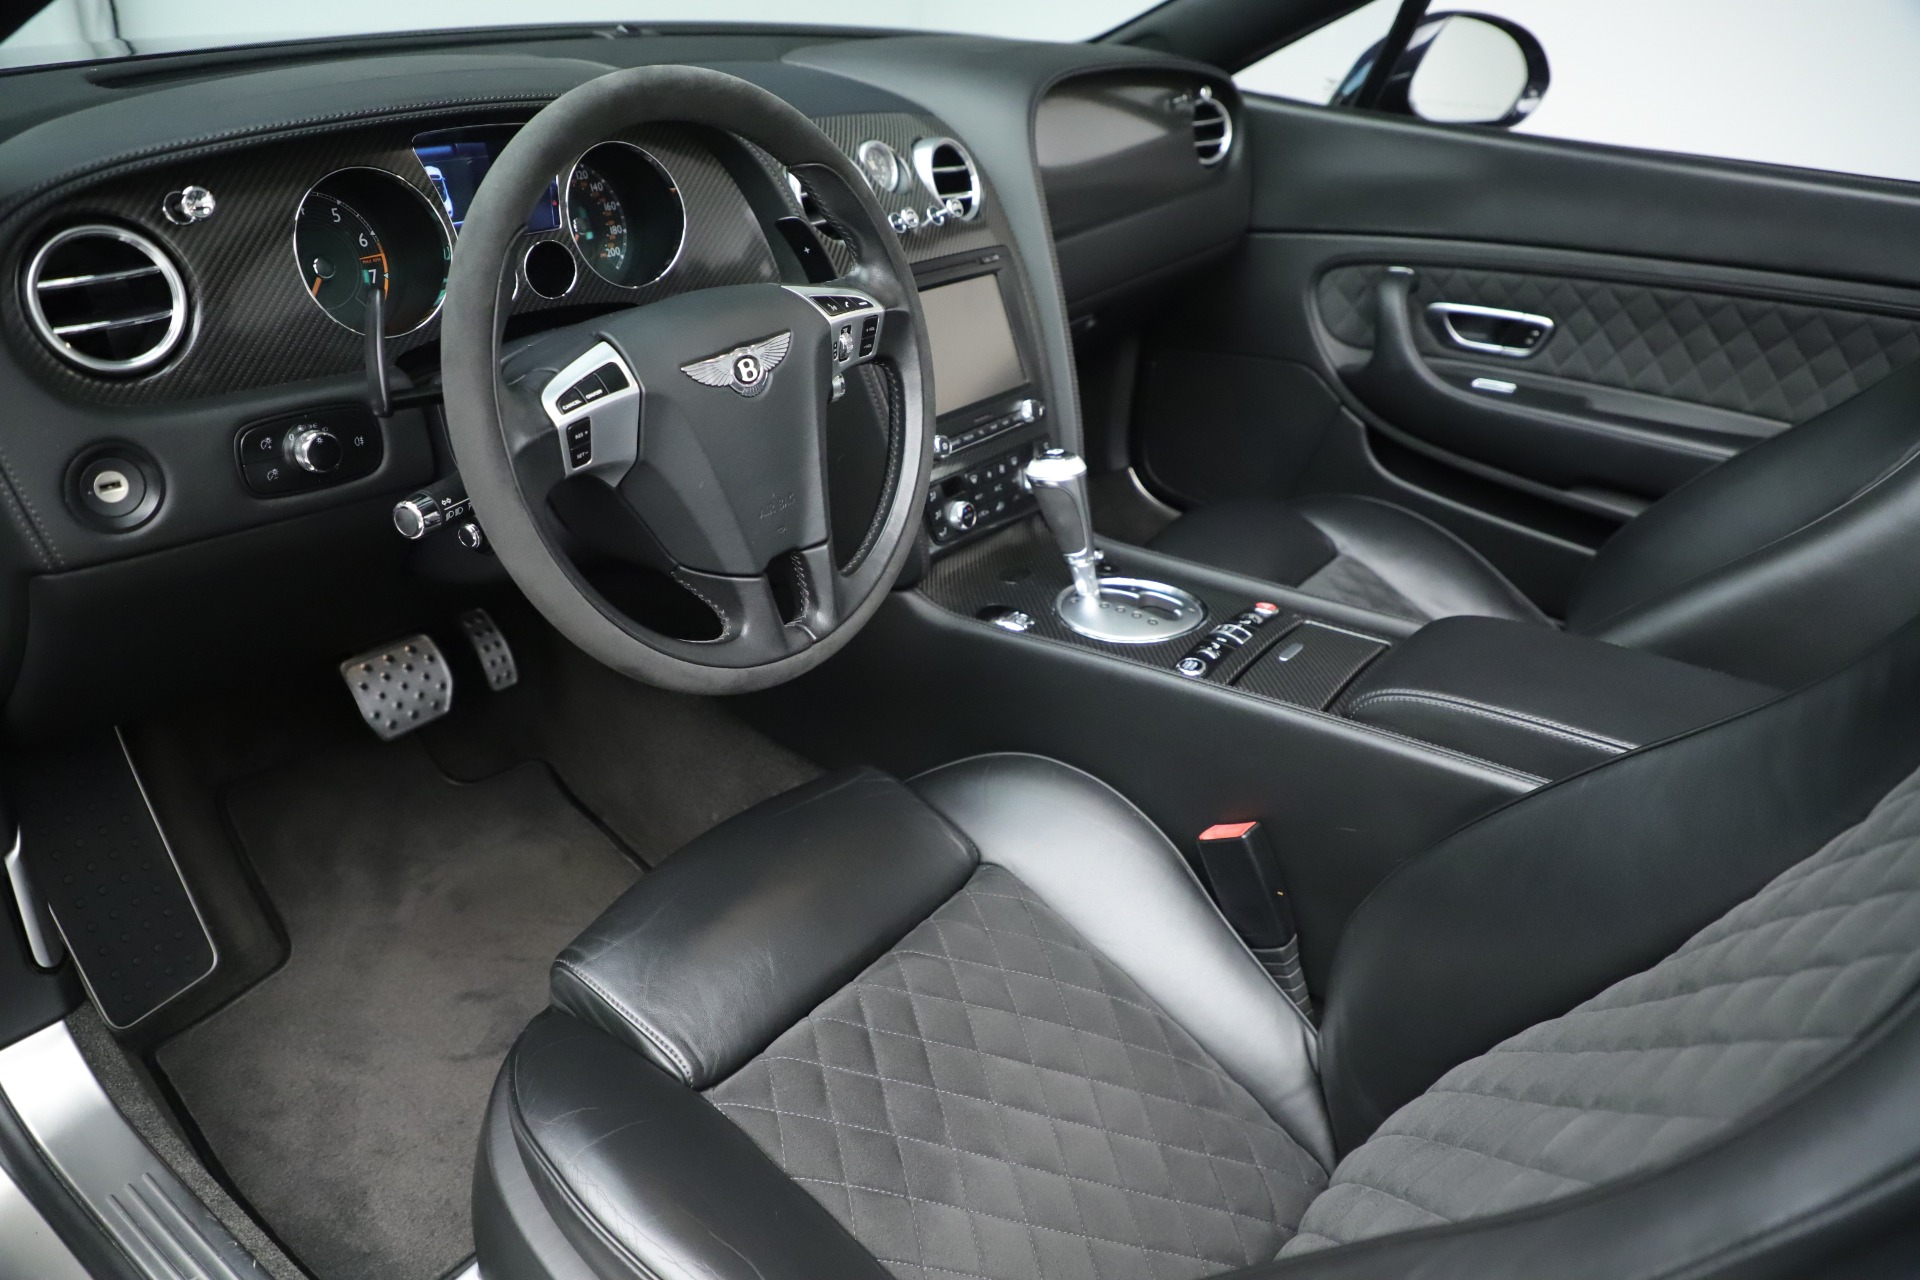 Used 2012 Bentley Continental GT Supersports For Sale In Westport, CT 3214_p22